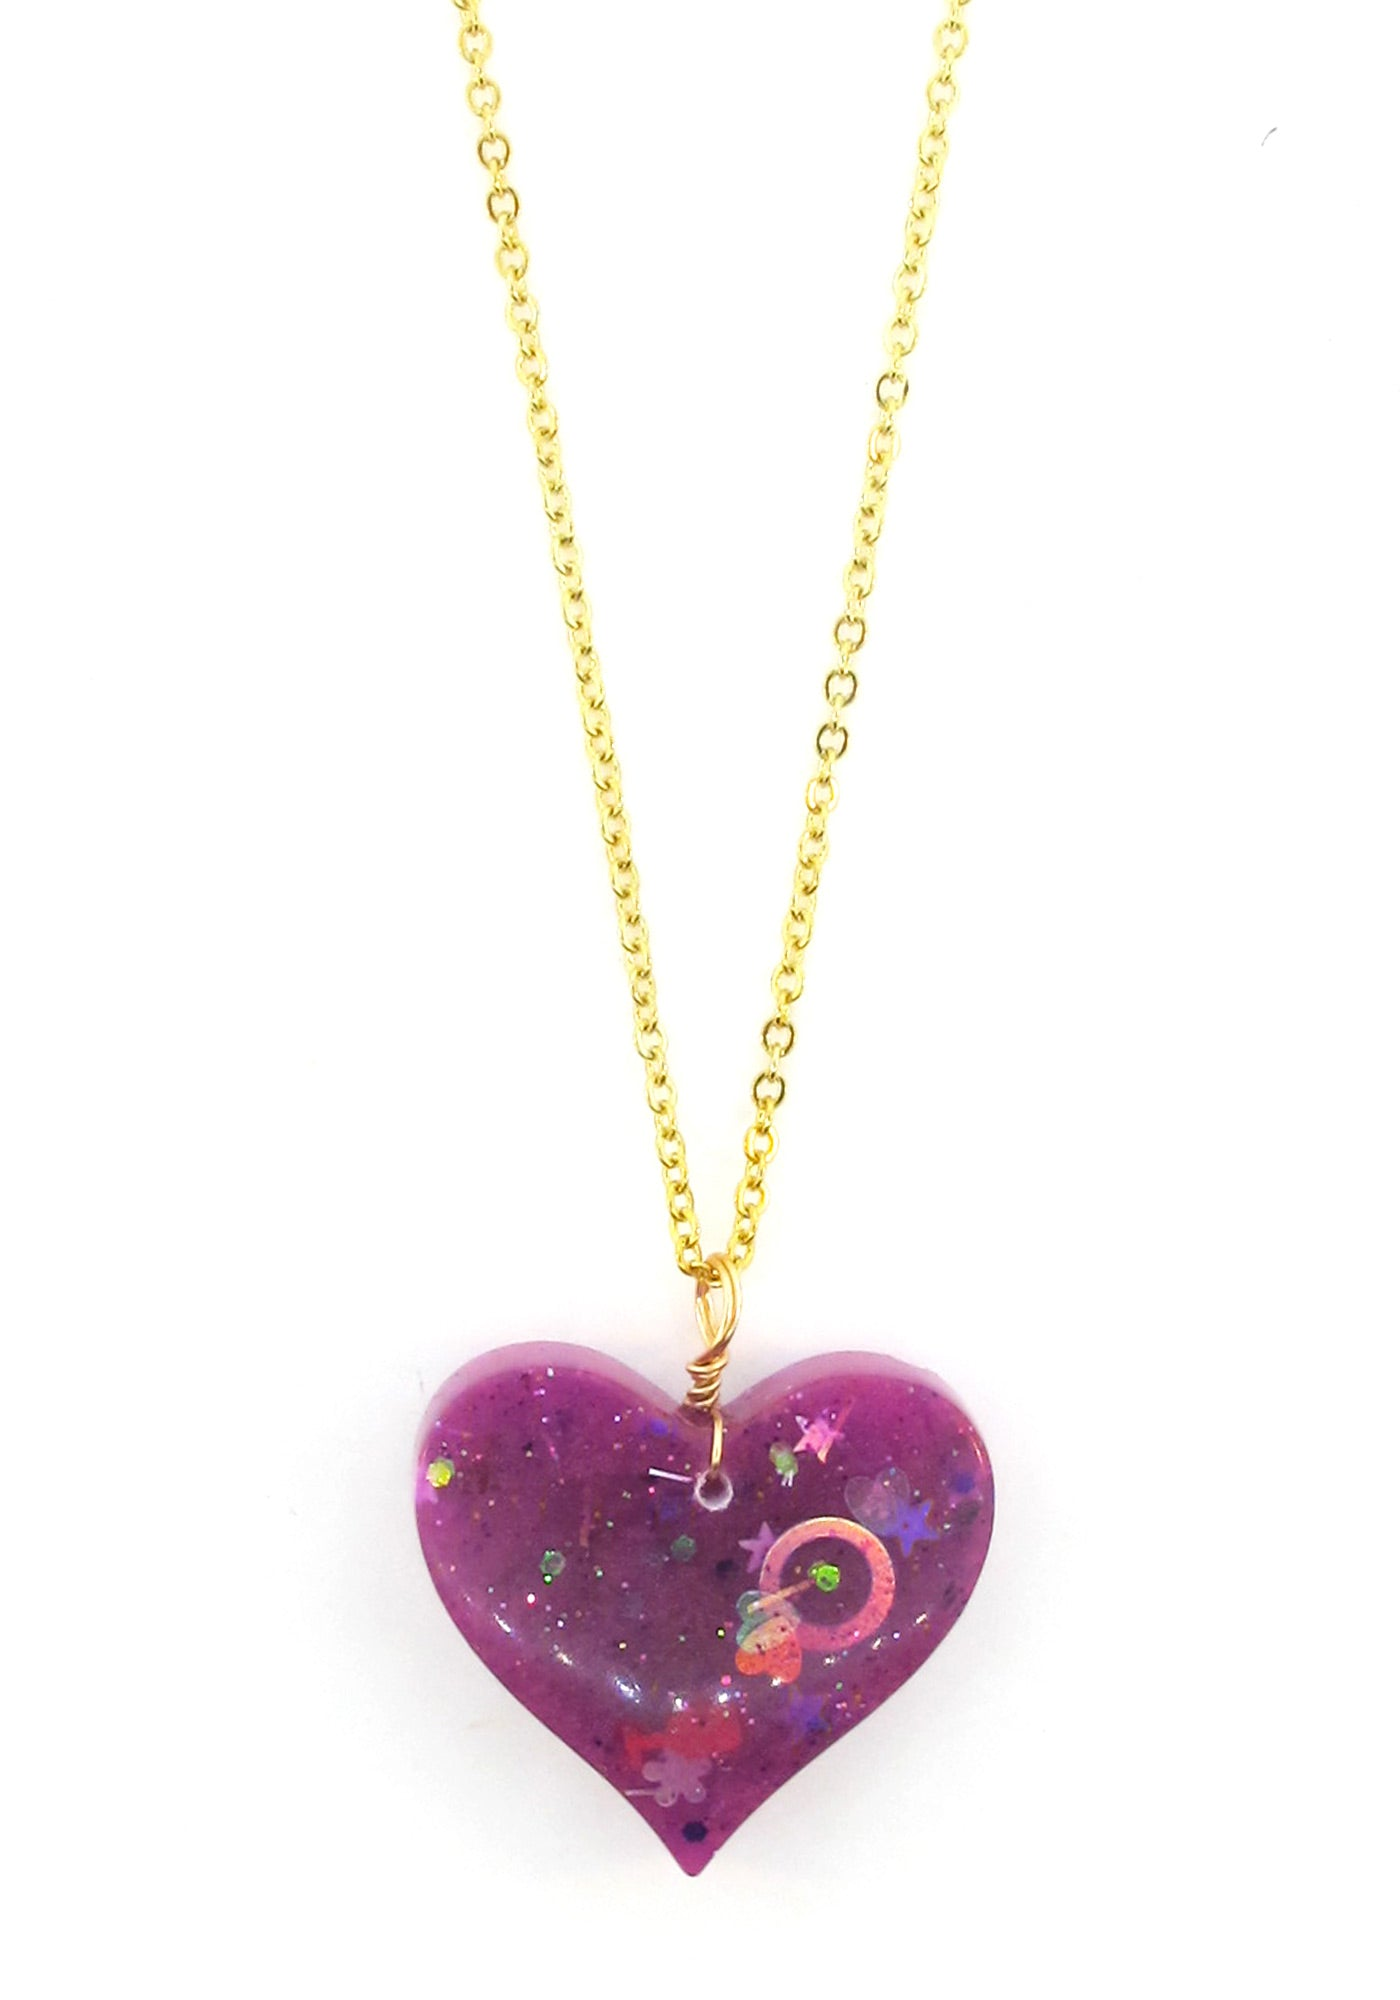 tcw necklace pendant heart pink effy purple sapphire jewelry splash silver sterling